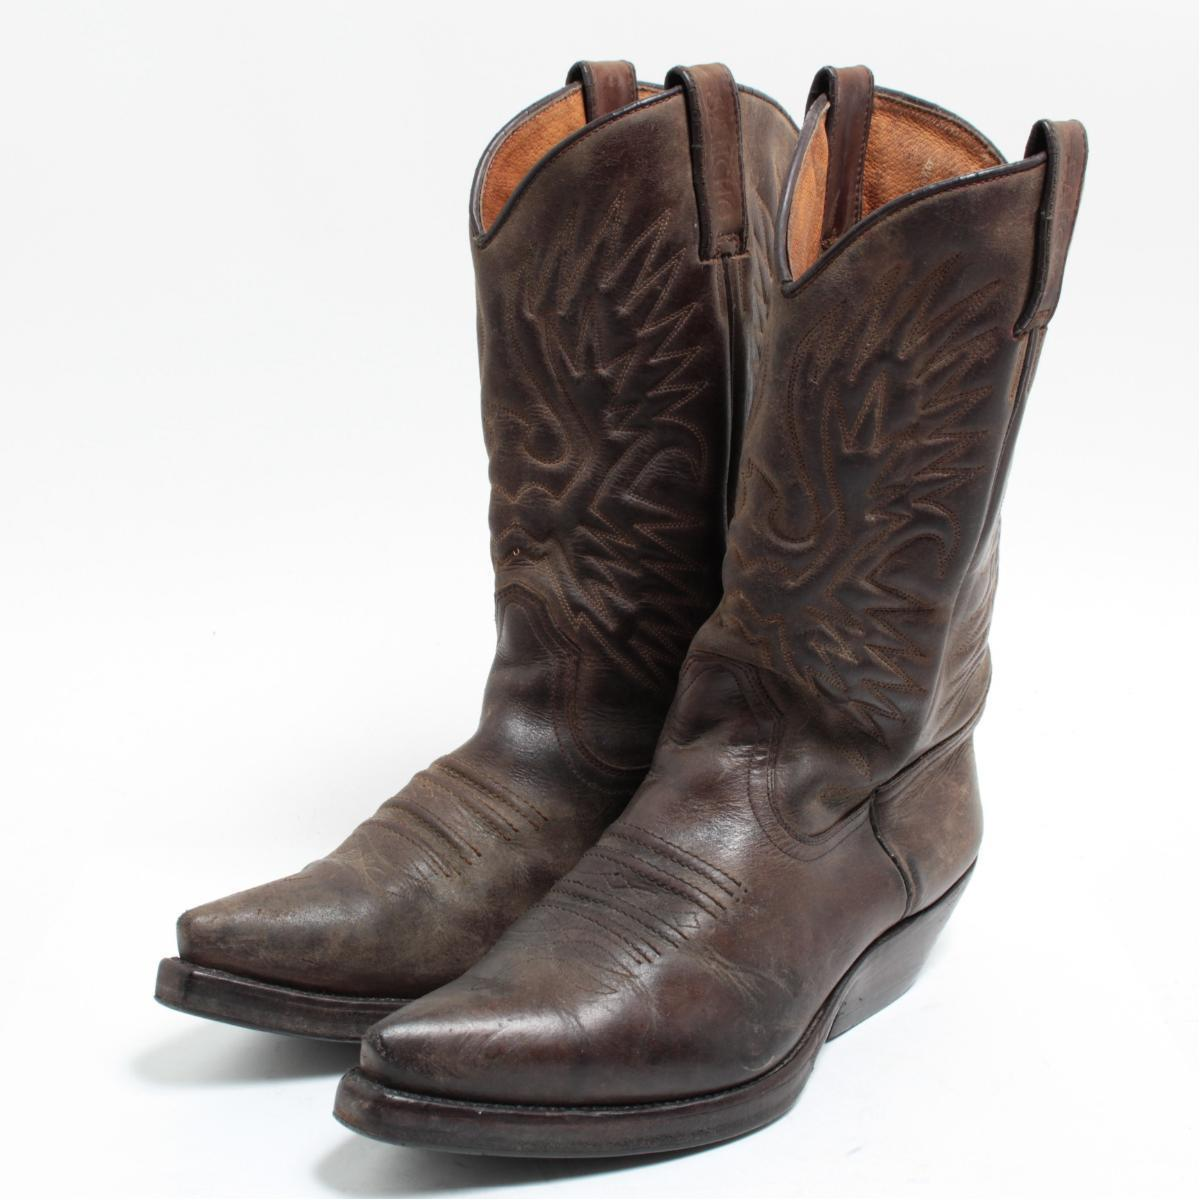 1770acd0c5d Product made in サンチョ SANCHO western boots Spain 42 men's 26.5cm /boj8306